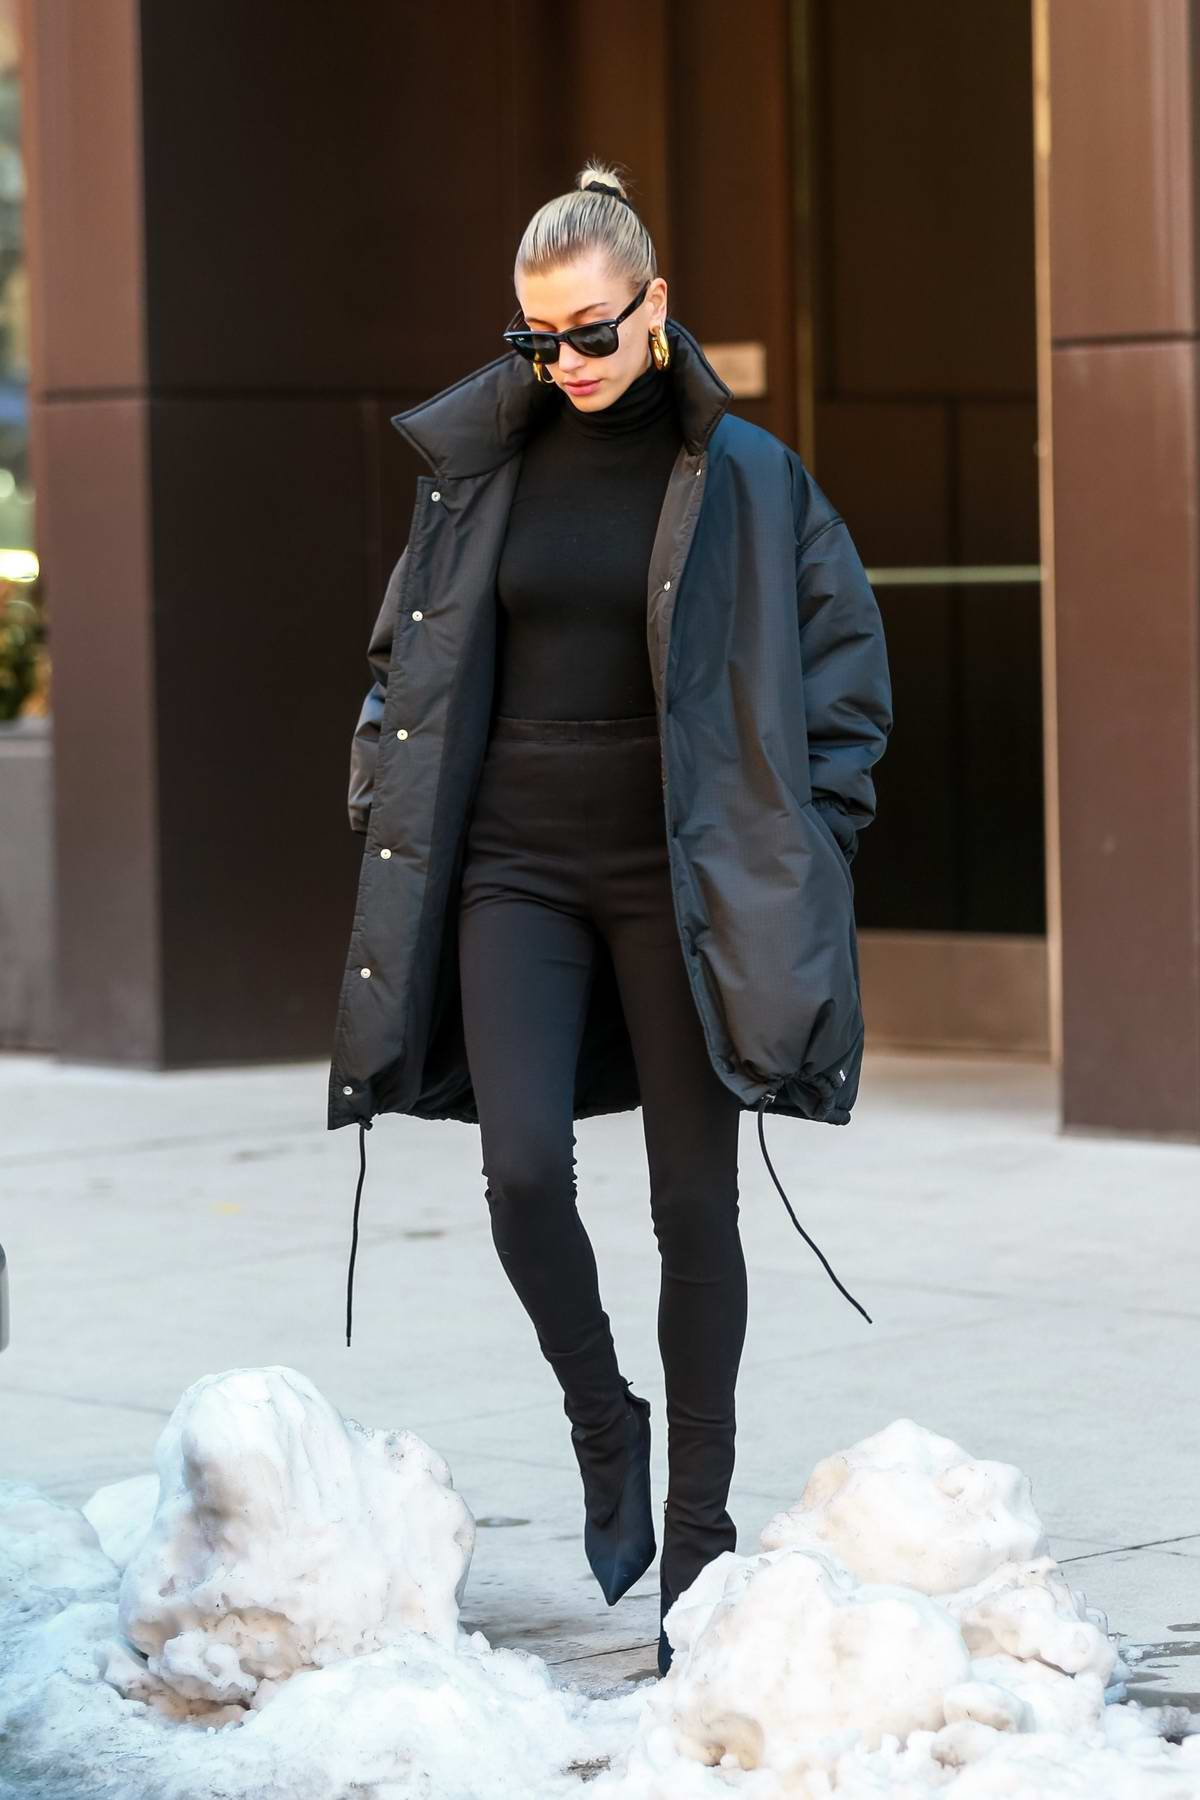 Hailey Baldwin Bieber looks chic in all black as she makes her way around piles of snow to get to her ride in New York City